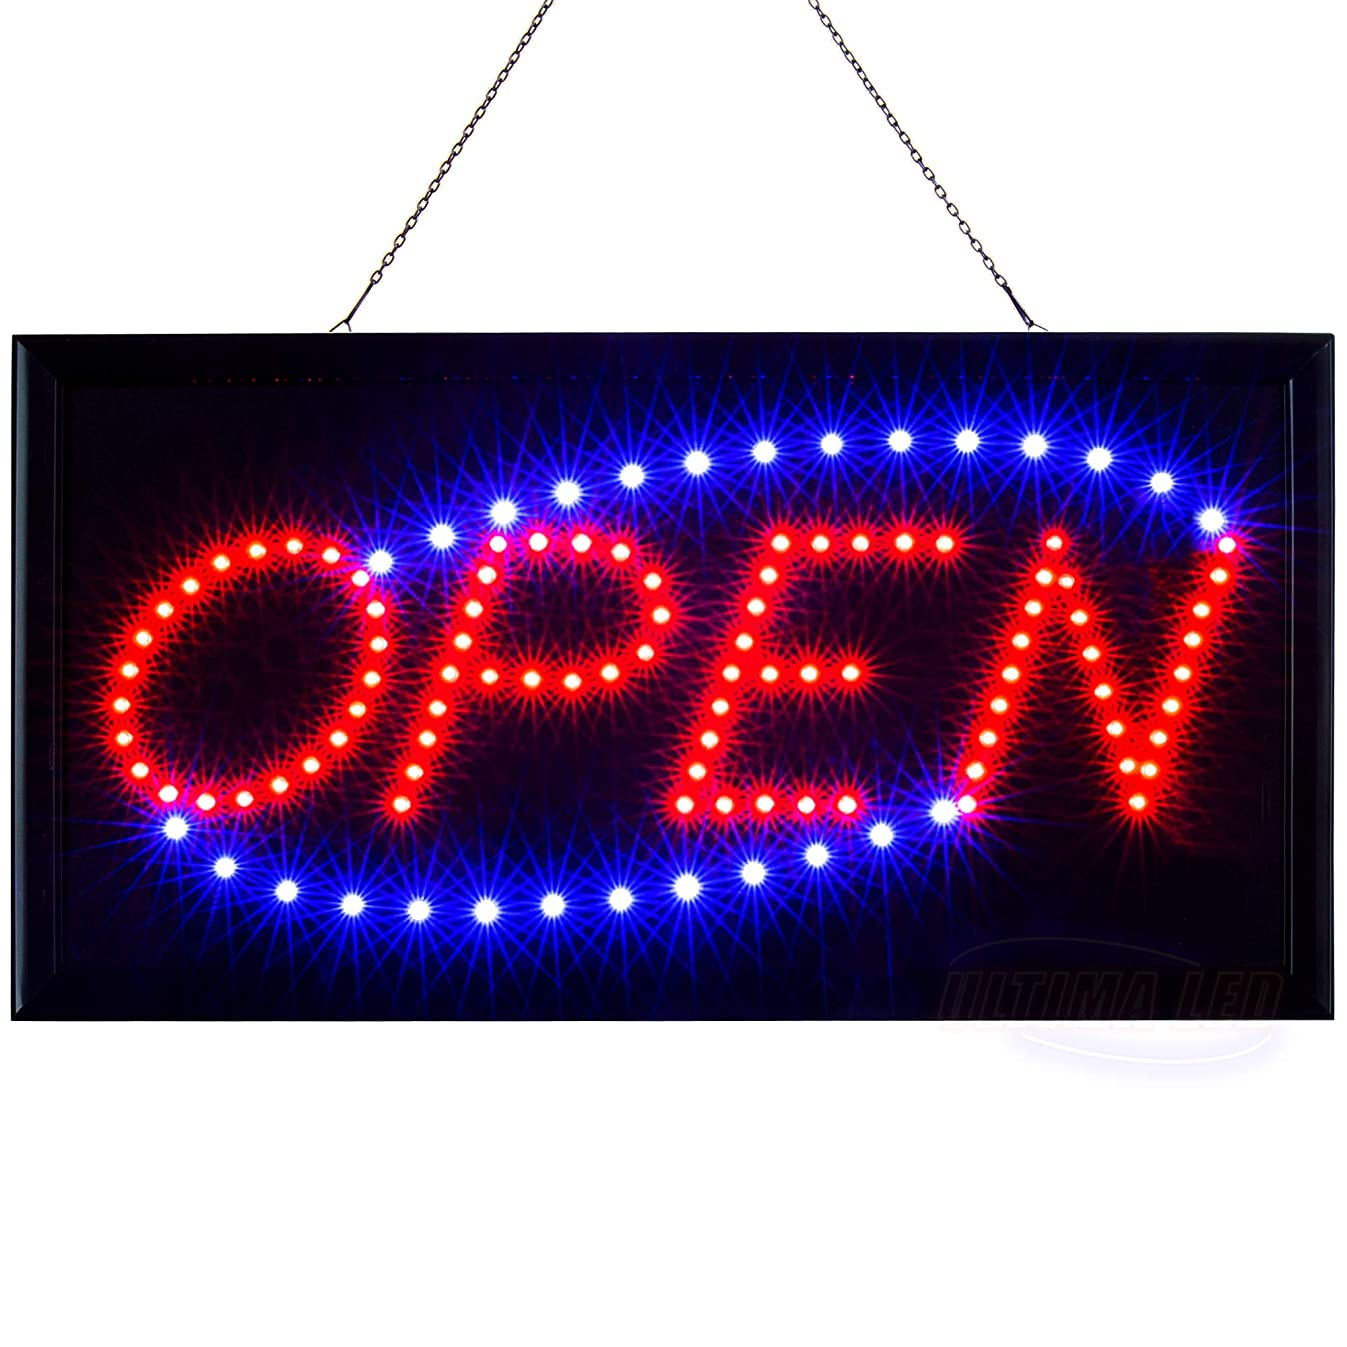 LED Neon Open Sign for Business Displays: Light Up Sign Open with 2 Flashing Modes - Electronic Lighted Signs for Shops, Hotels, Liquor Stores (19 x 10 inches, Model 2)